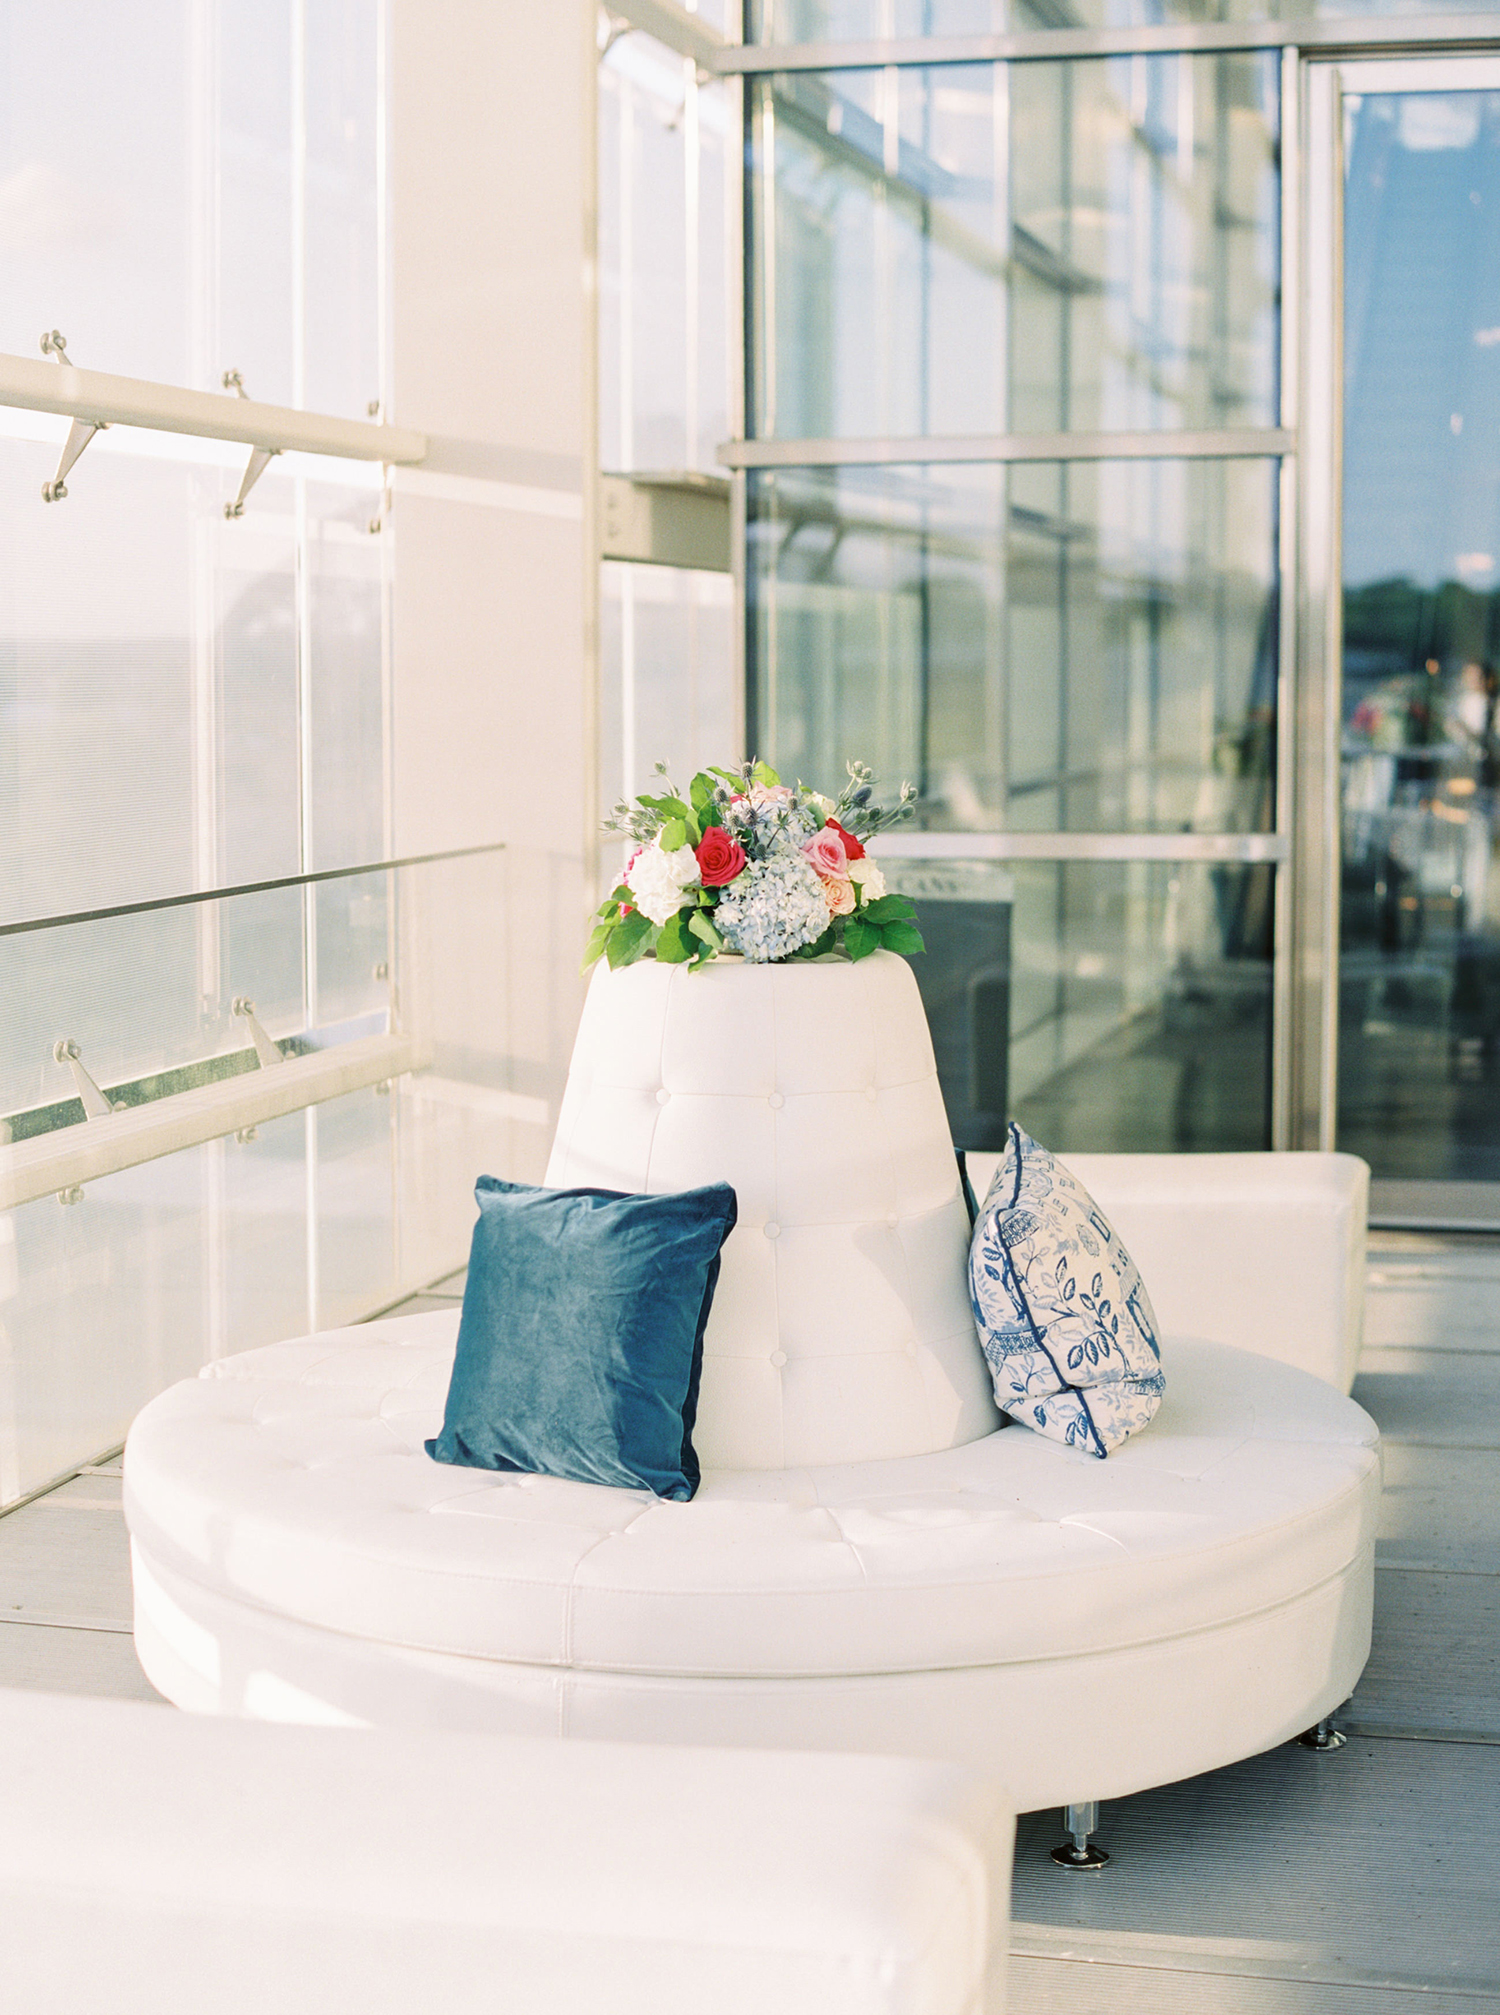 wedding lounge circular couch with blue pillows